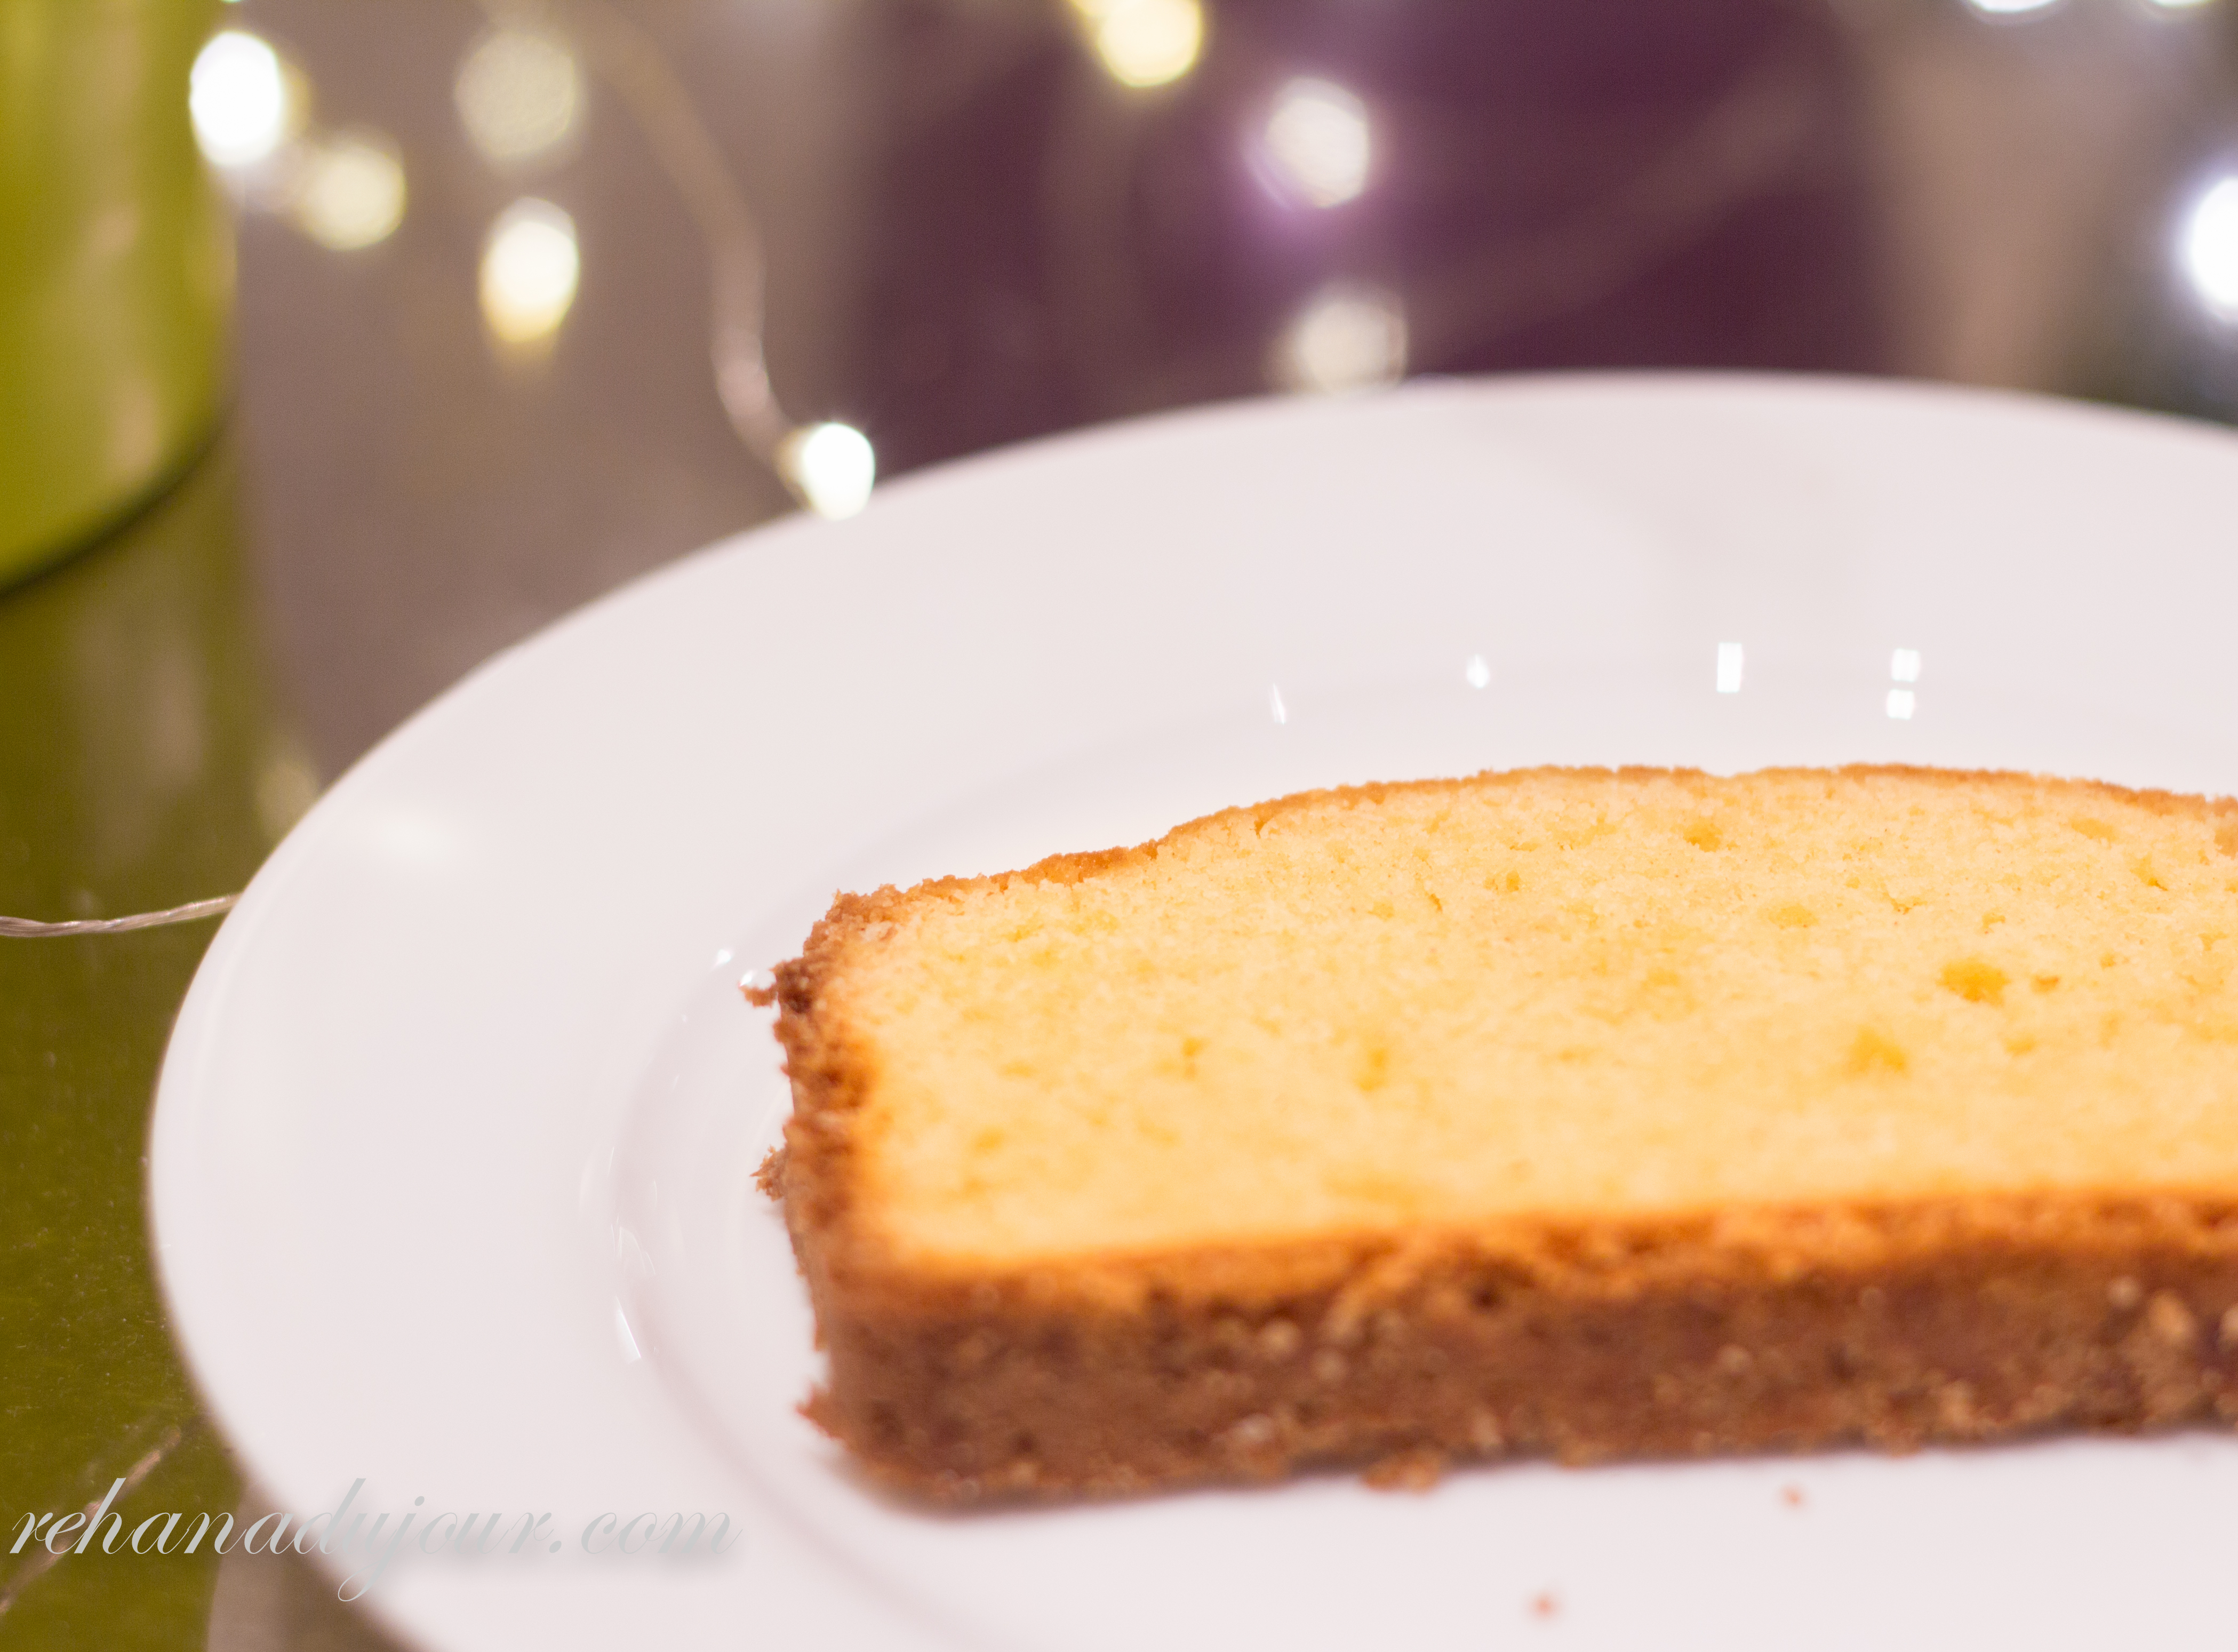 Perfect Pound Cake | Rehana Du Jour